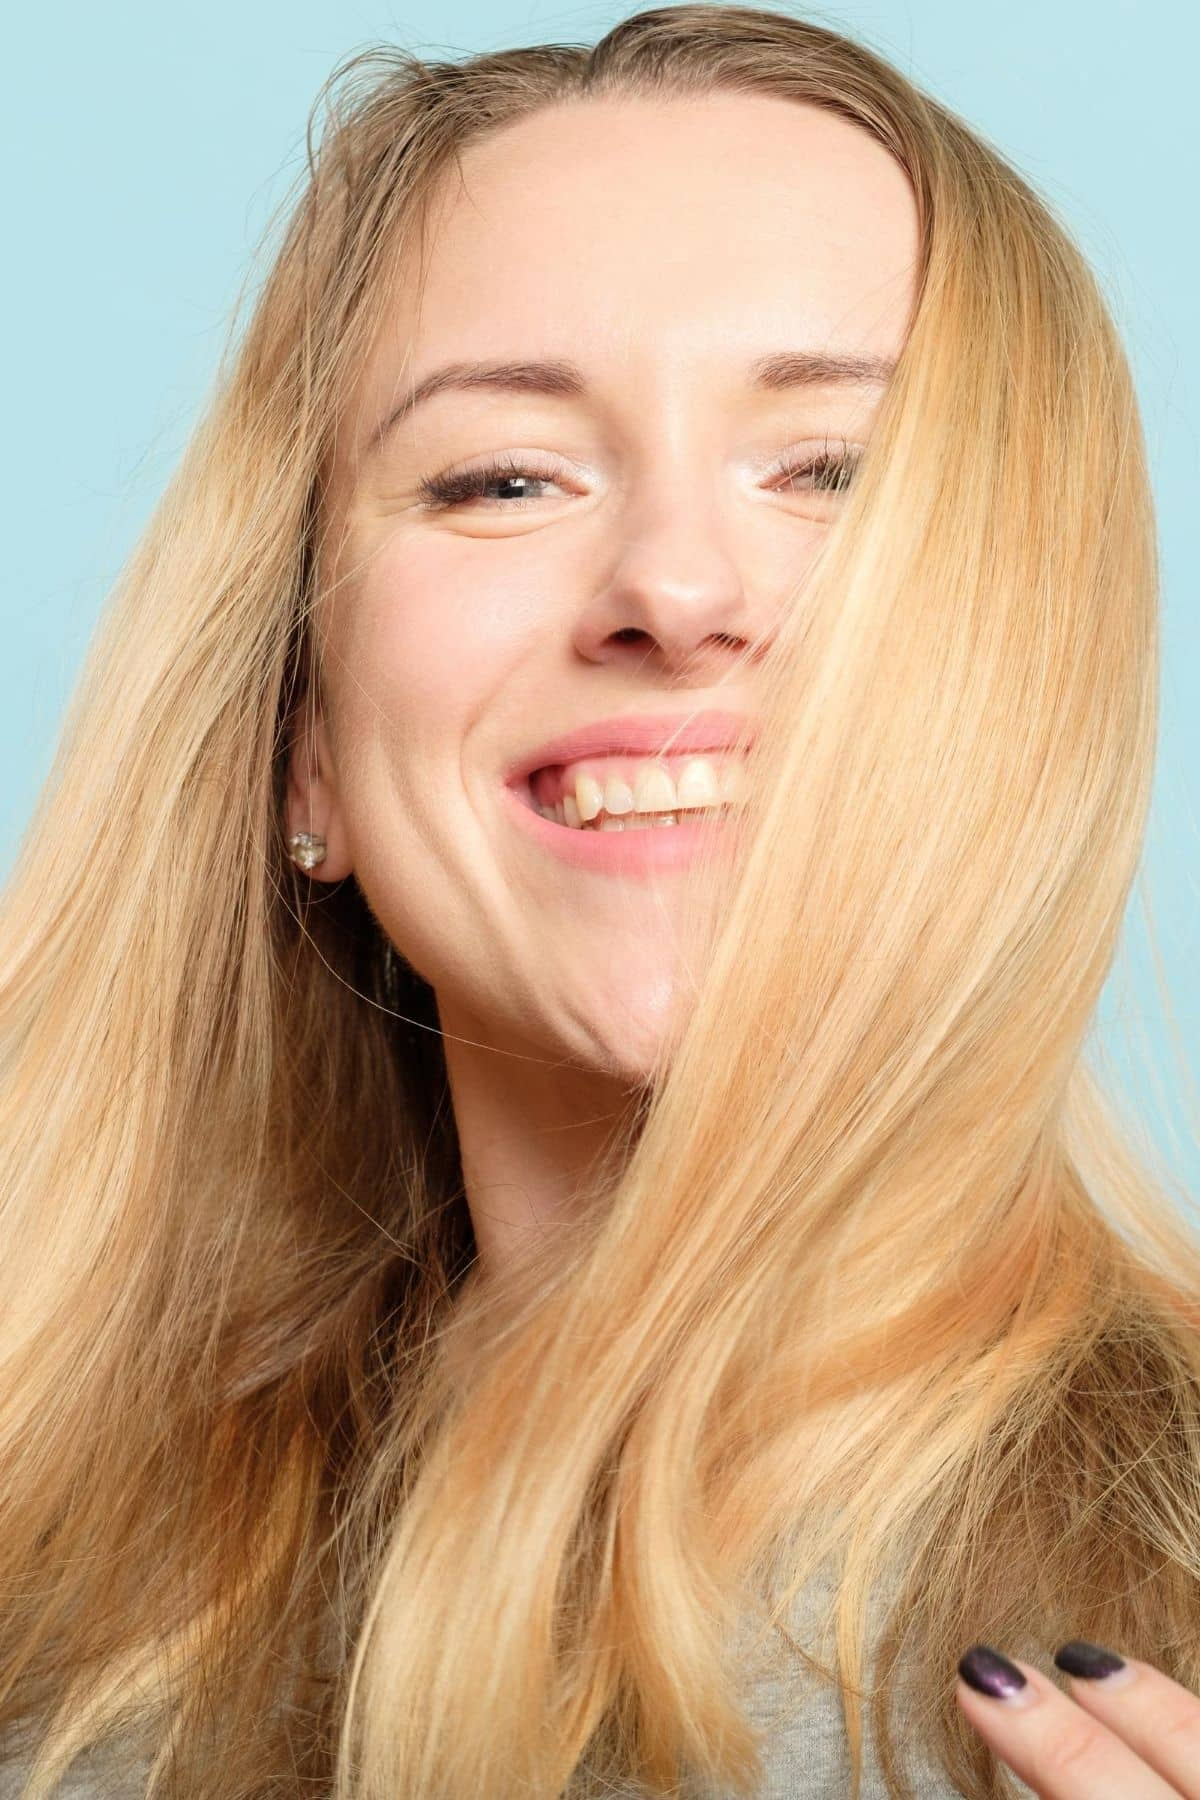 woman with long blond hair smiling at the camera